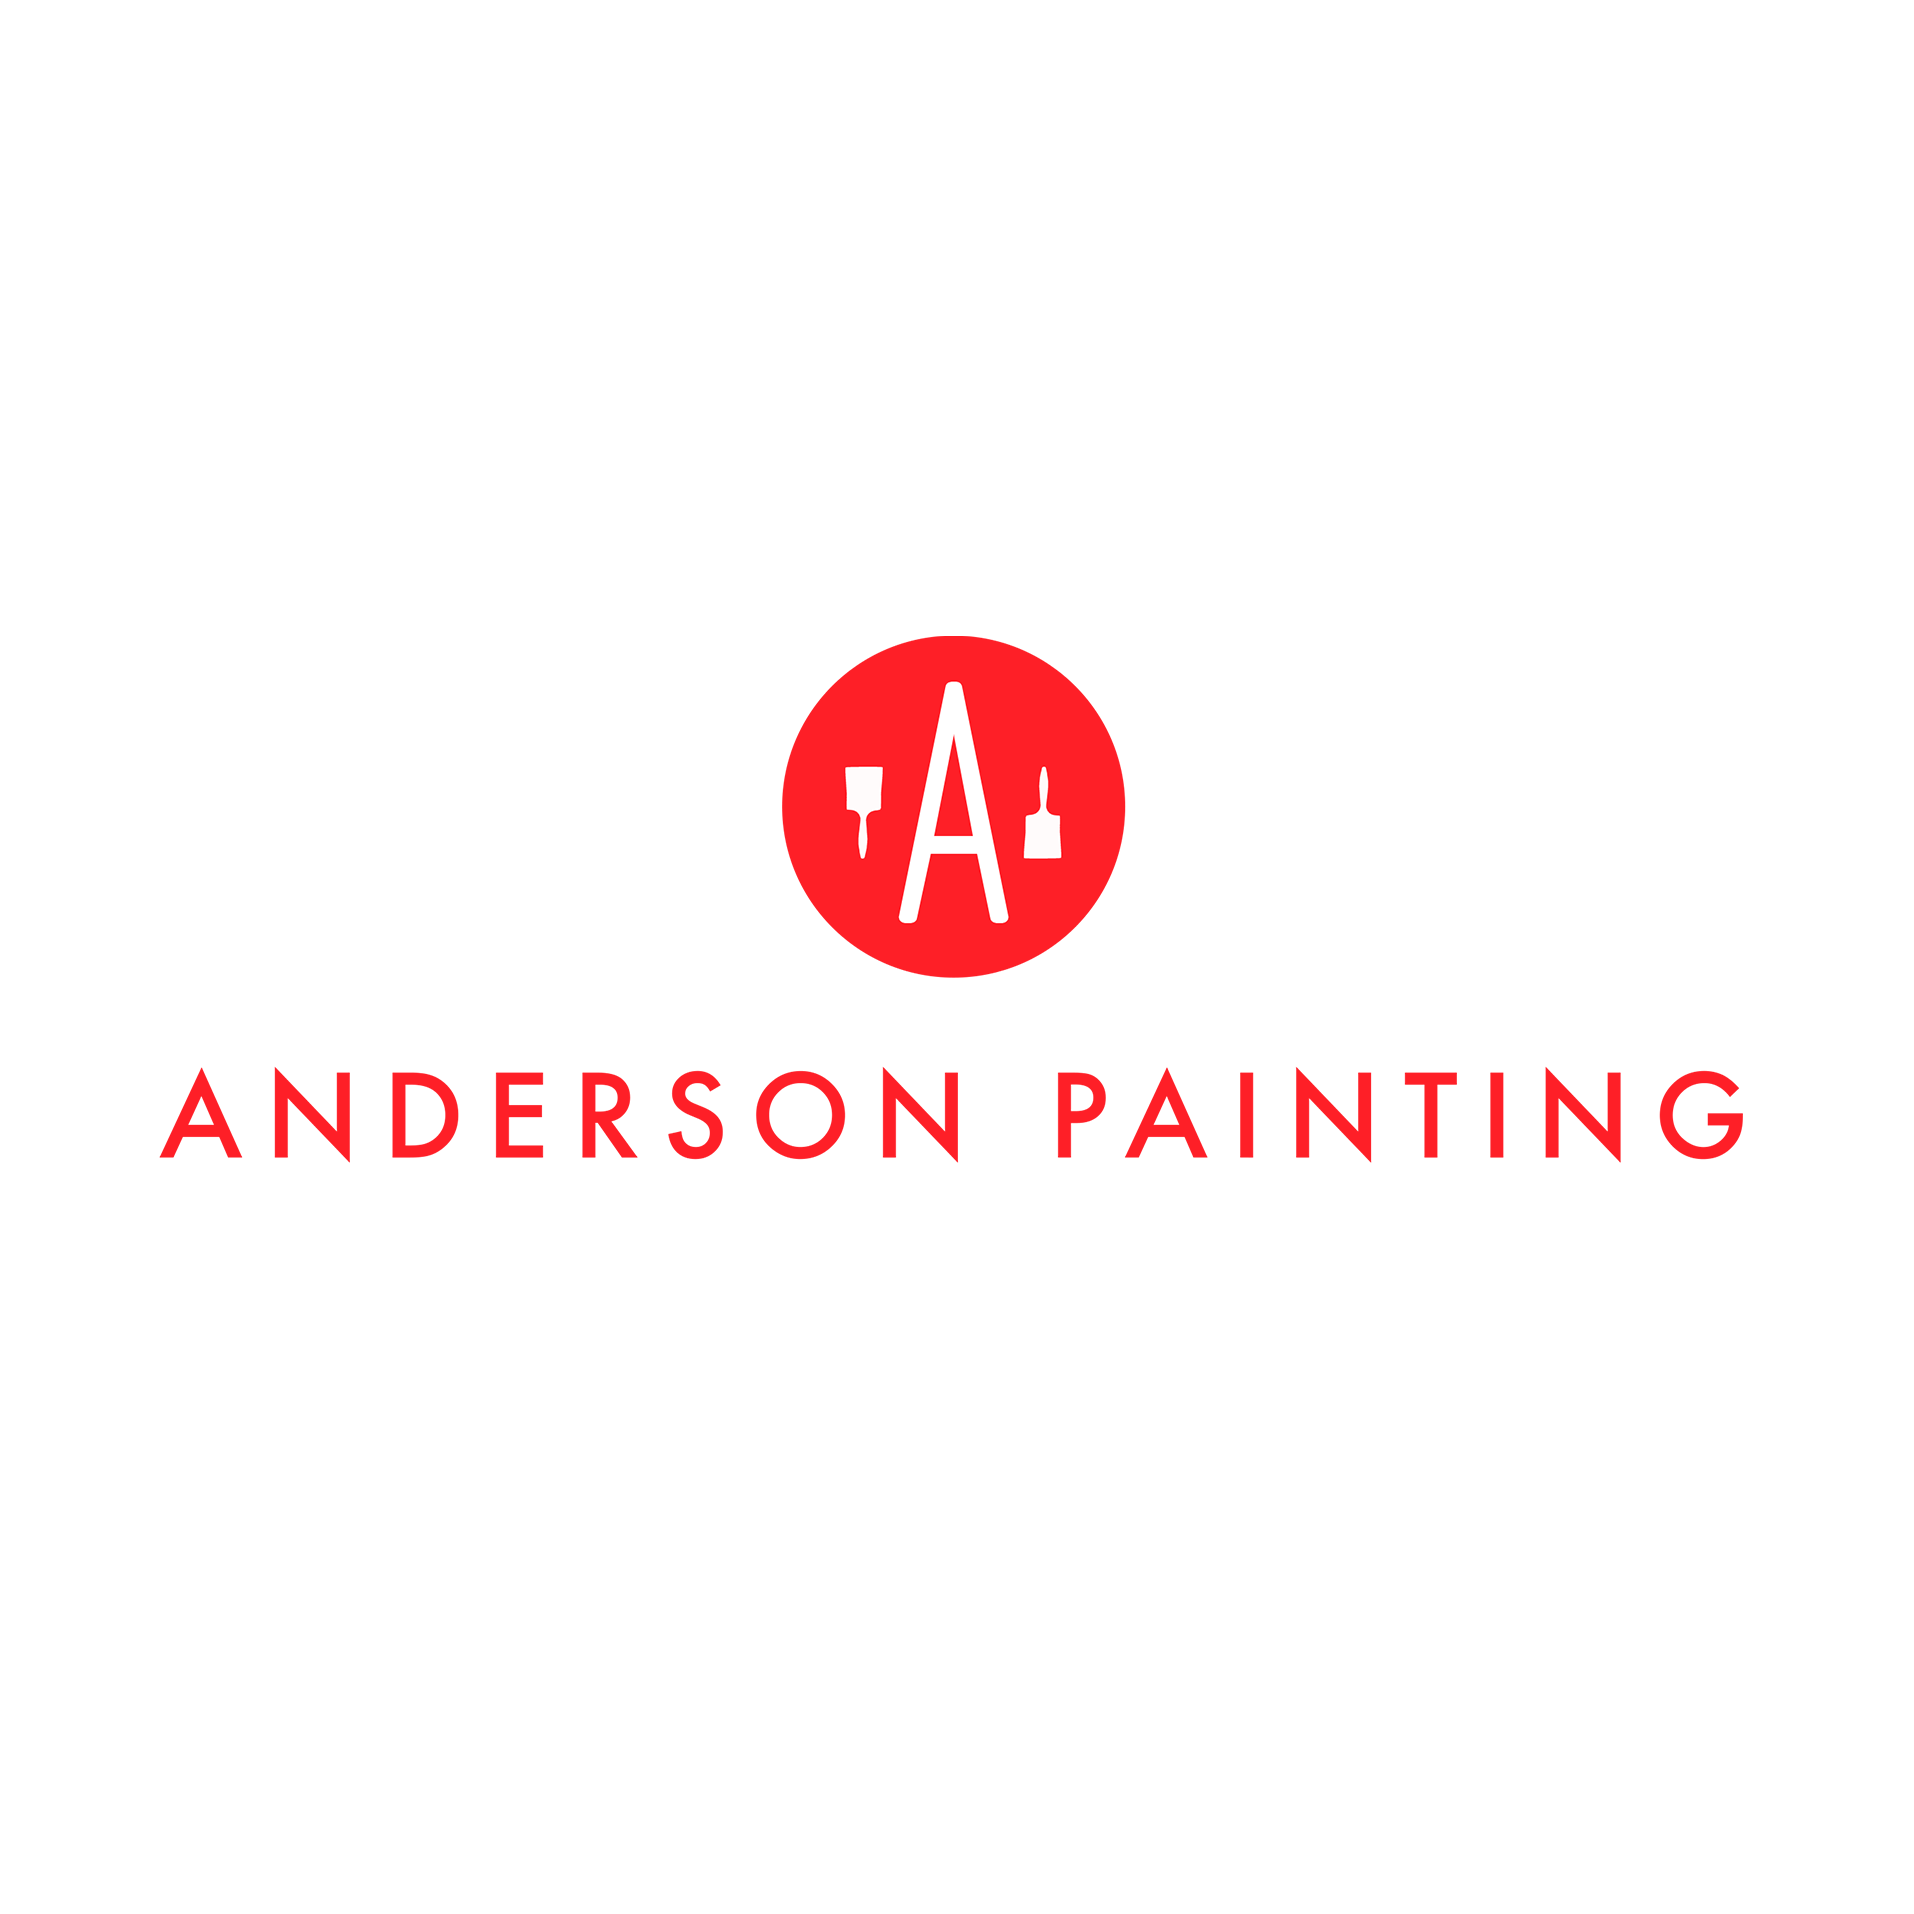 Anderson Paniting Alternative Logo